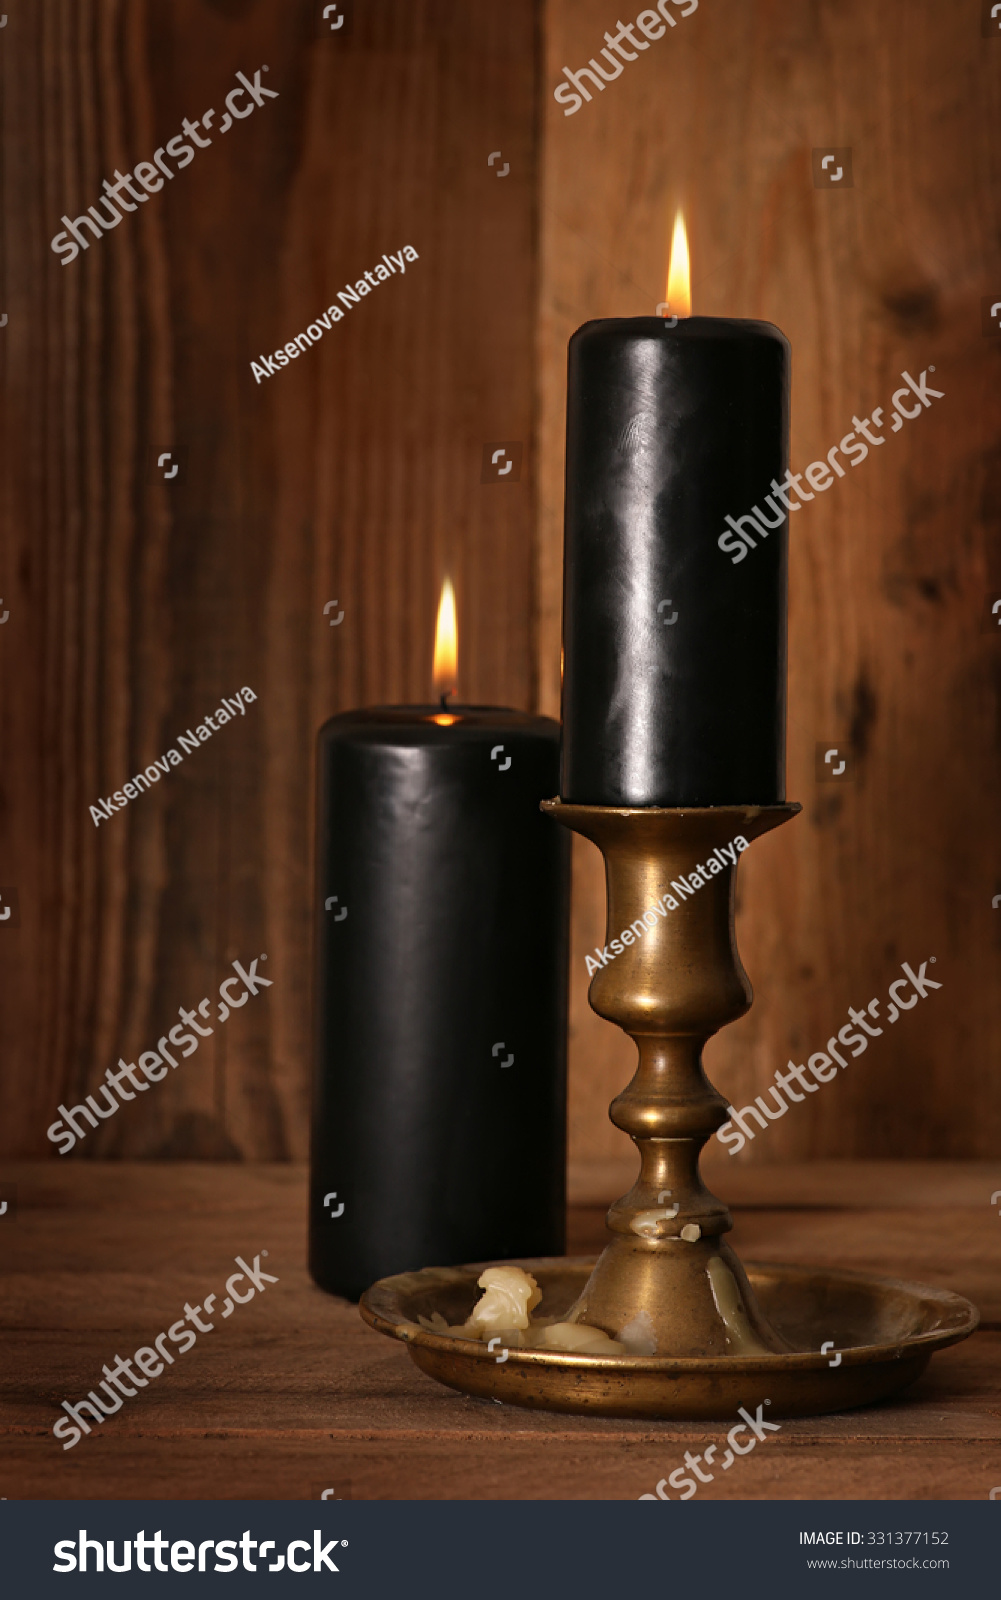 Black Burning Candles Wooden Background Symbols Stock Photo Edit